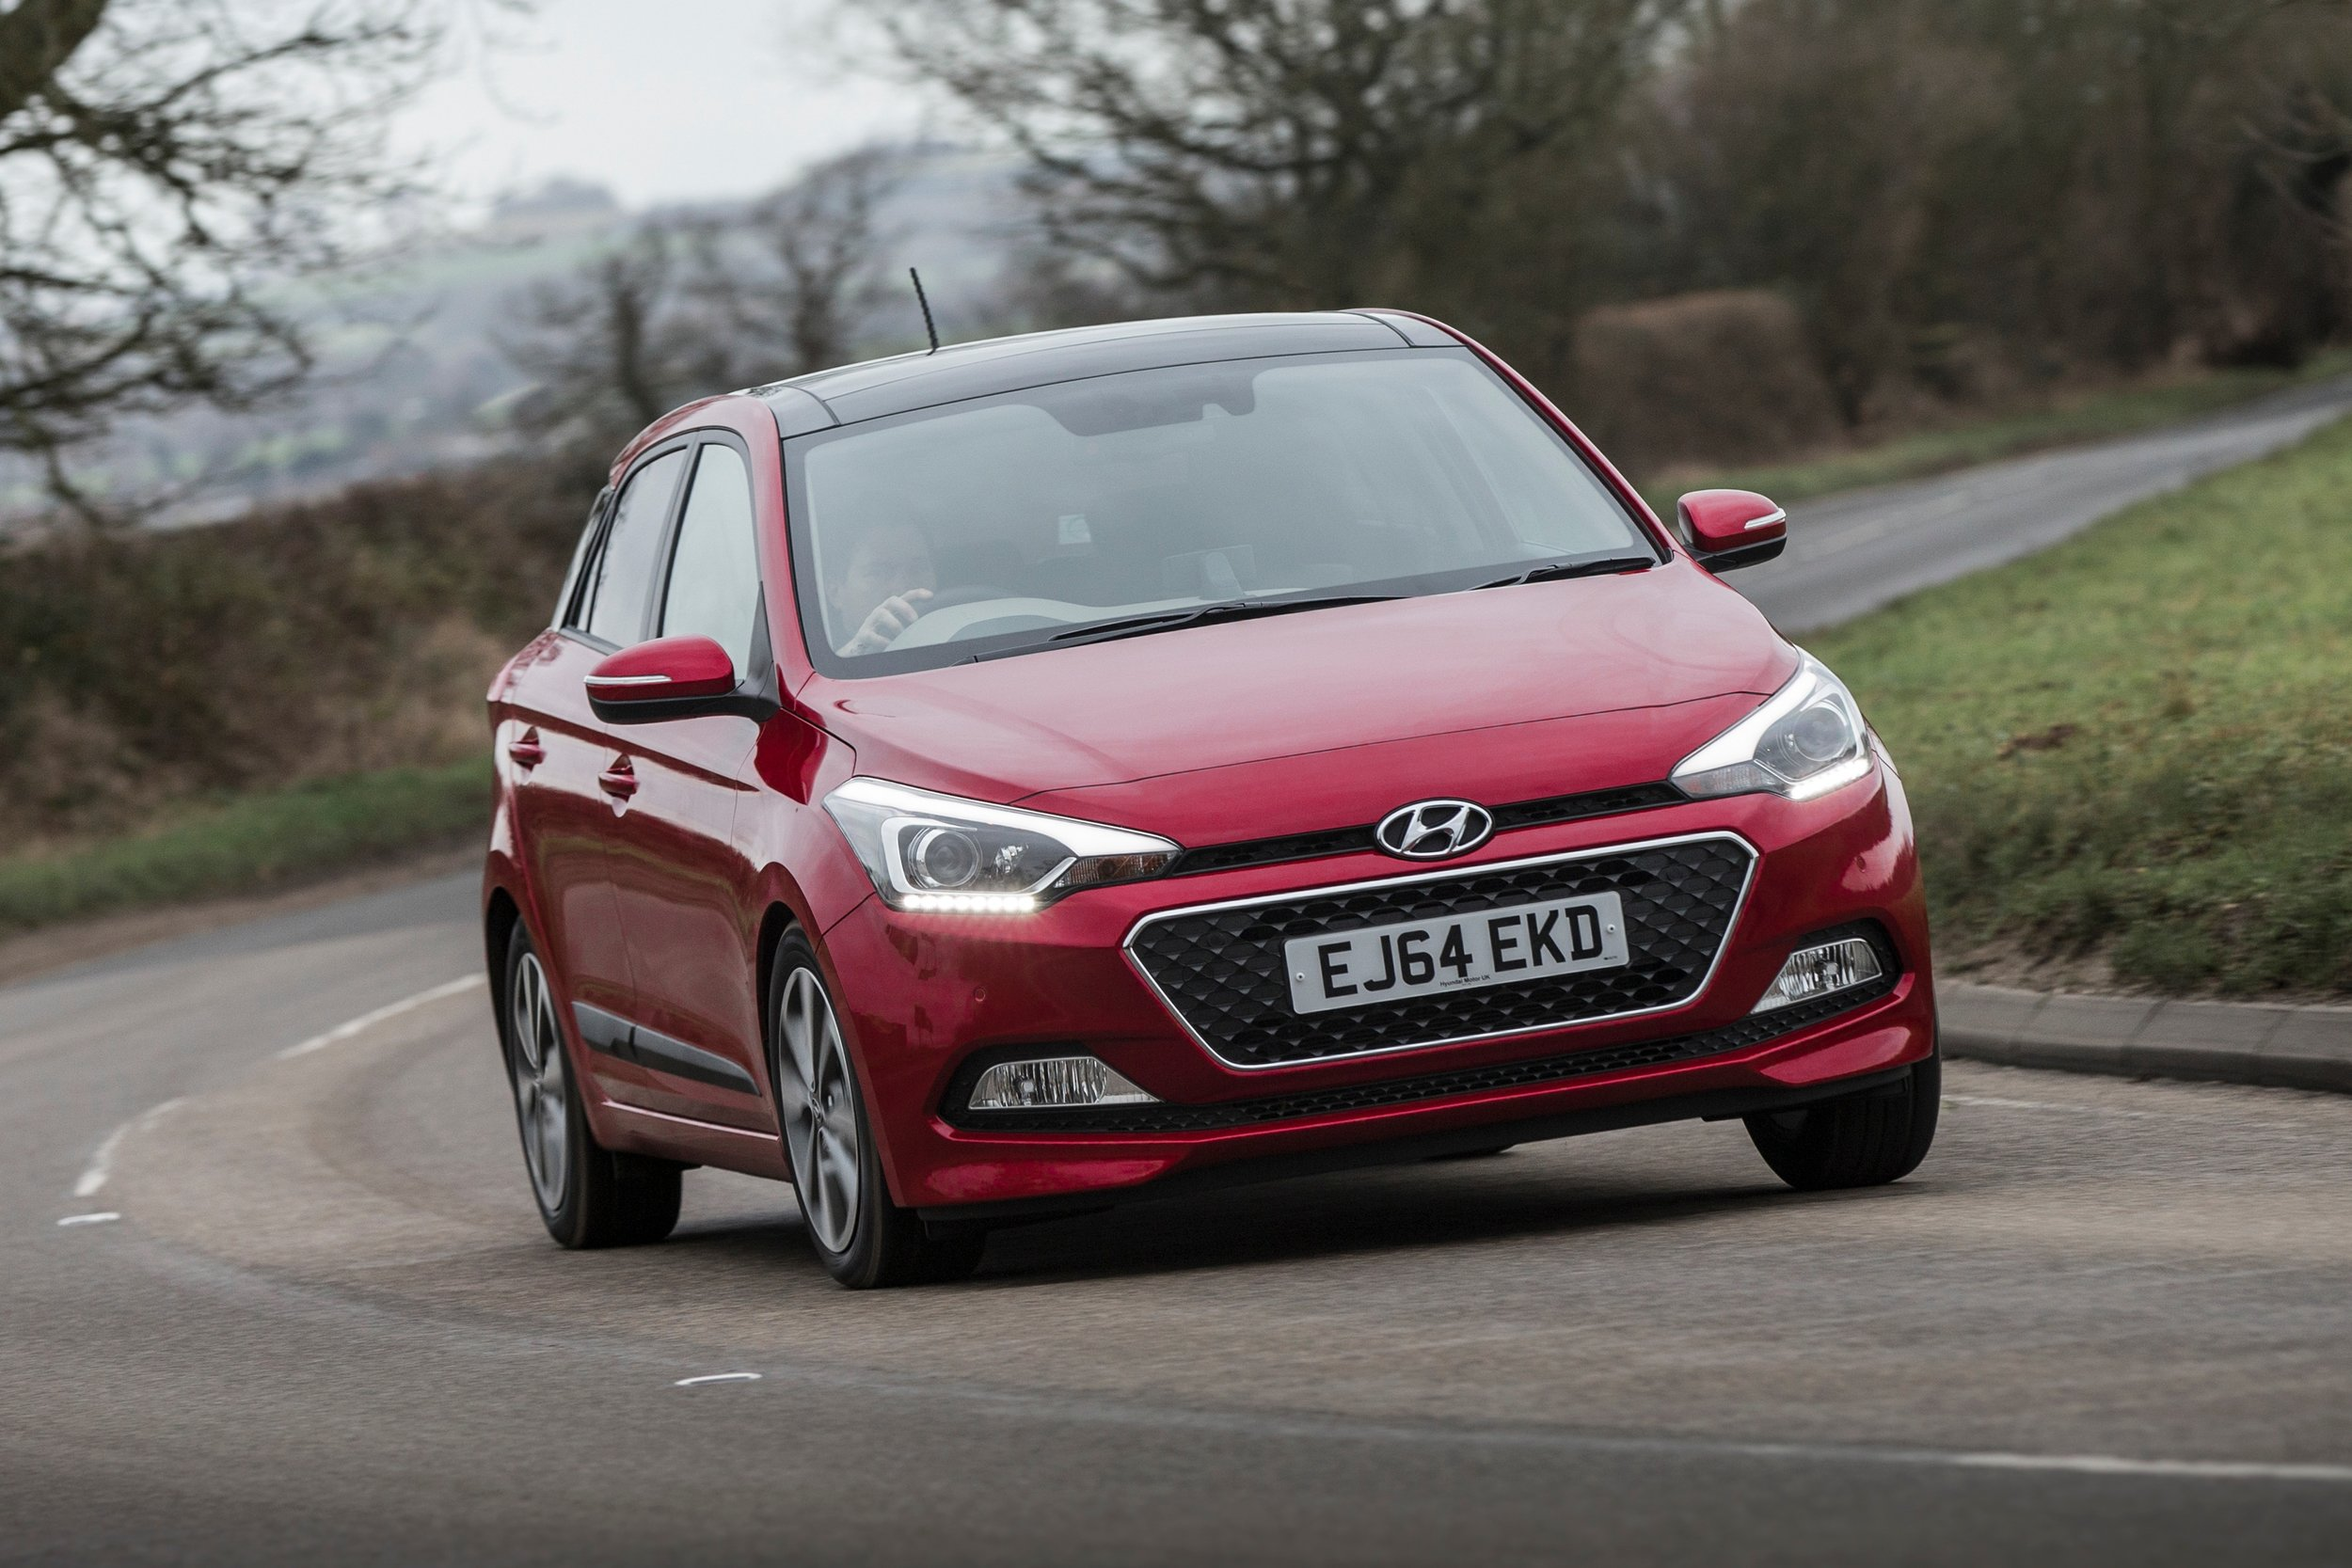 Hyundai i20 (15-)   The Hyundai 20 offers strong safety standards, it's simple to drive and very practical. At this price, the i20 should still be covered by the original warranty.